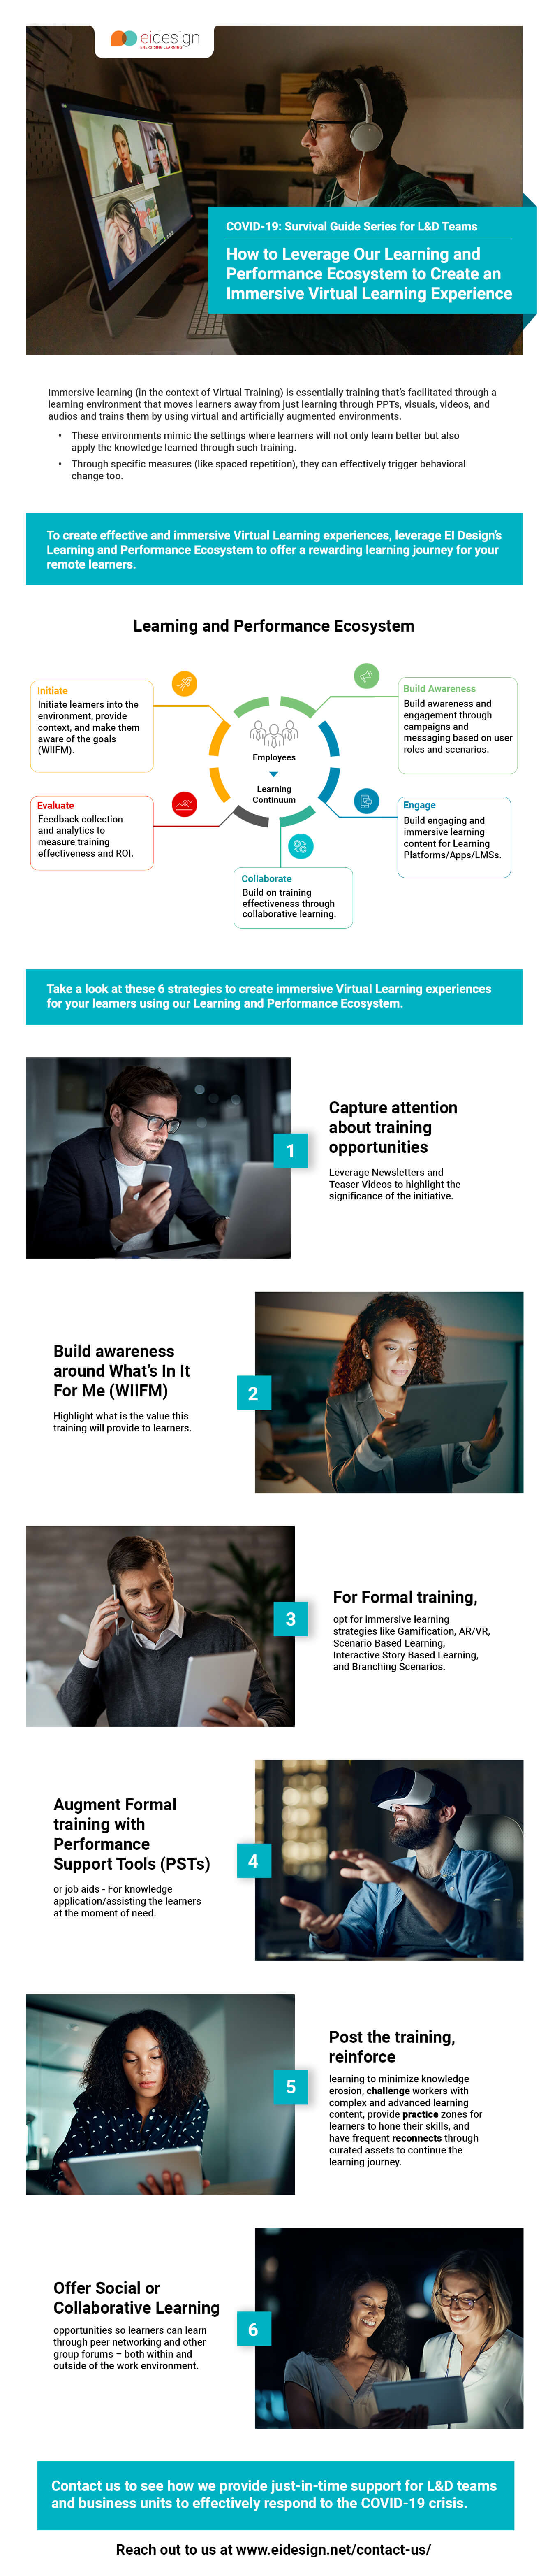 How to Leverage Our Learning and Performance Ecosystem to Create an Immersive Virtual Learning Experience